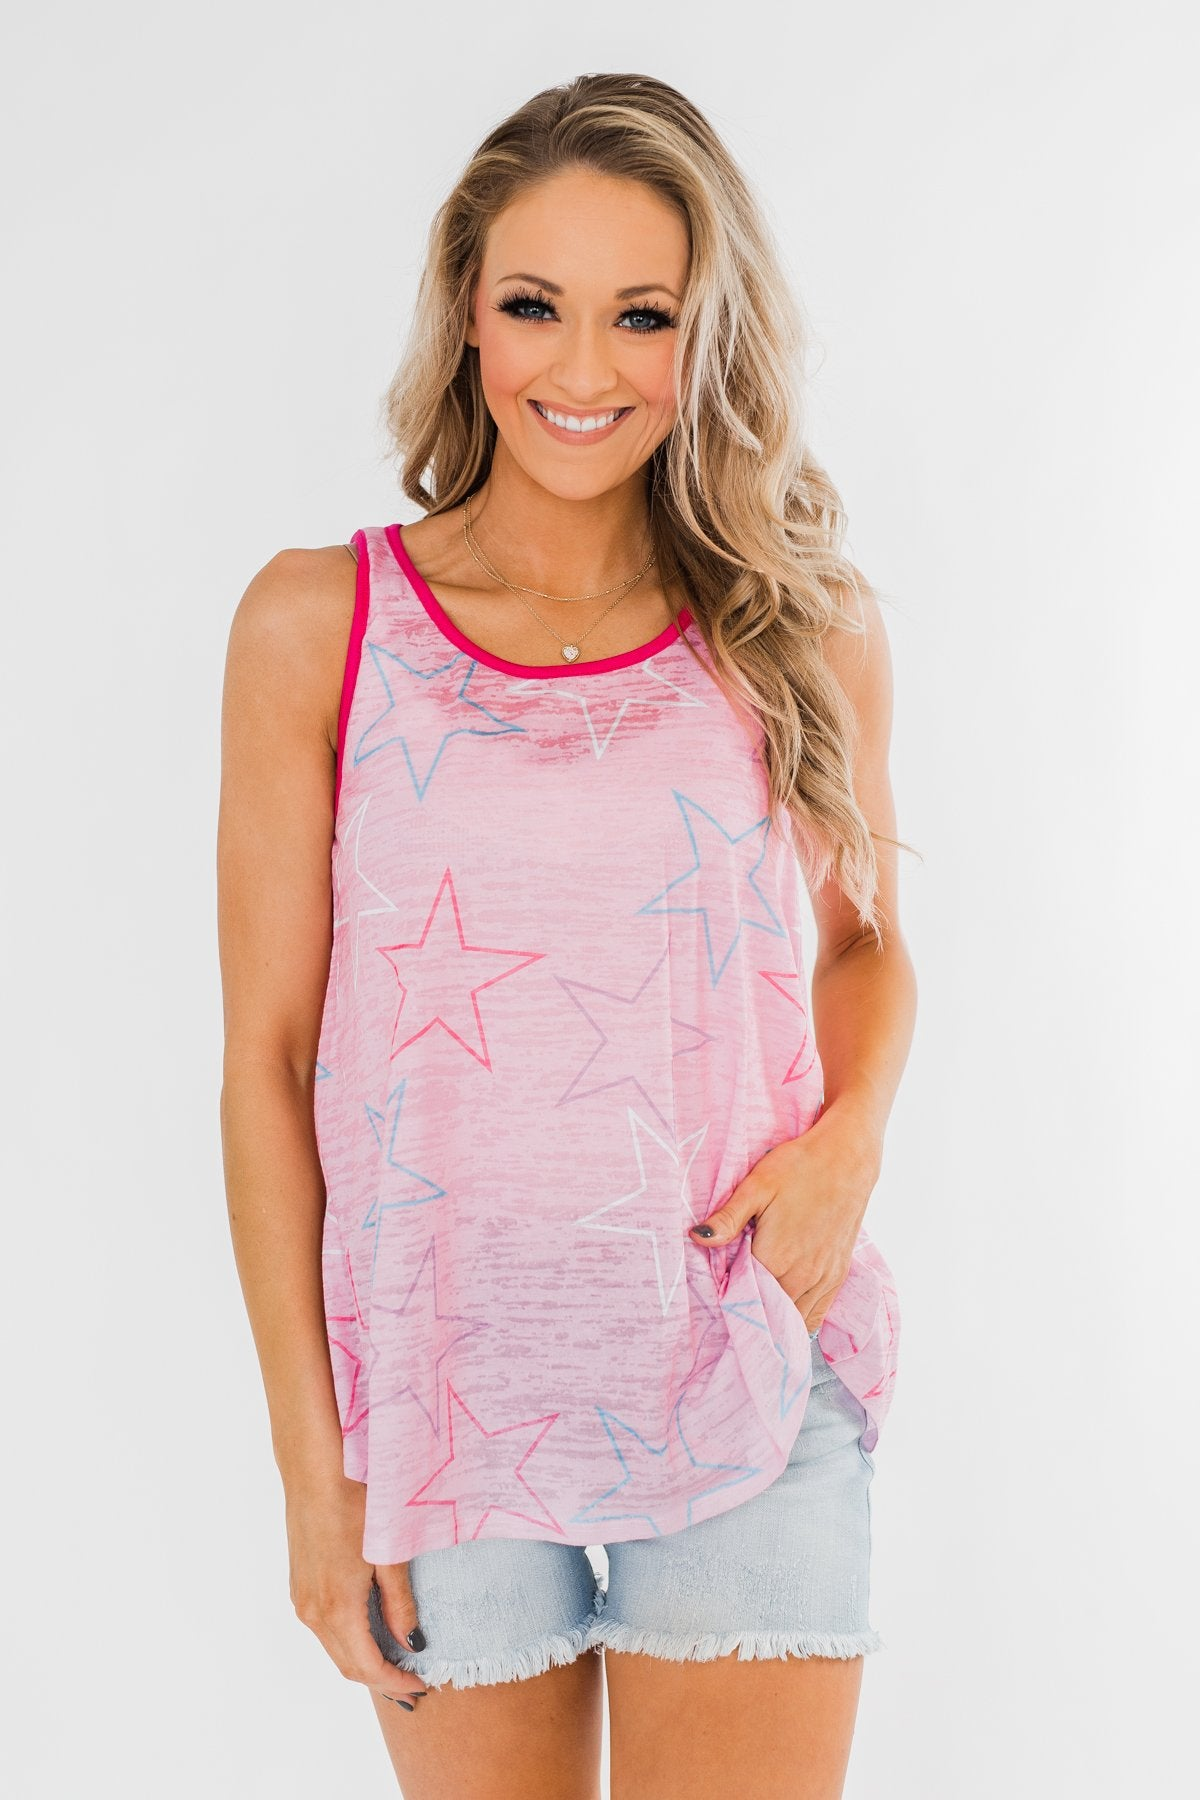 Multi-Colored Star Tank Top- Pink